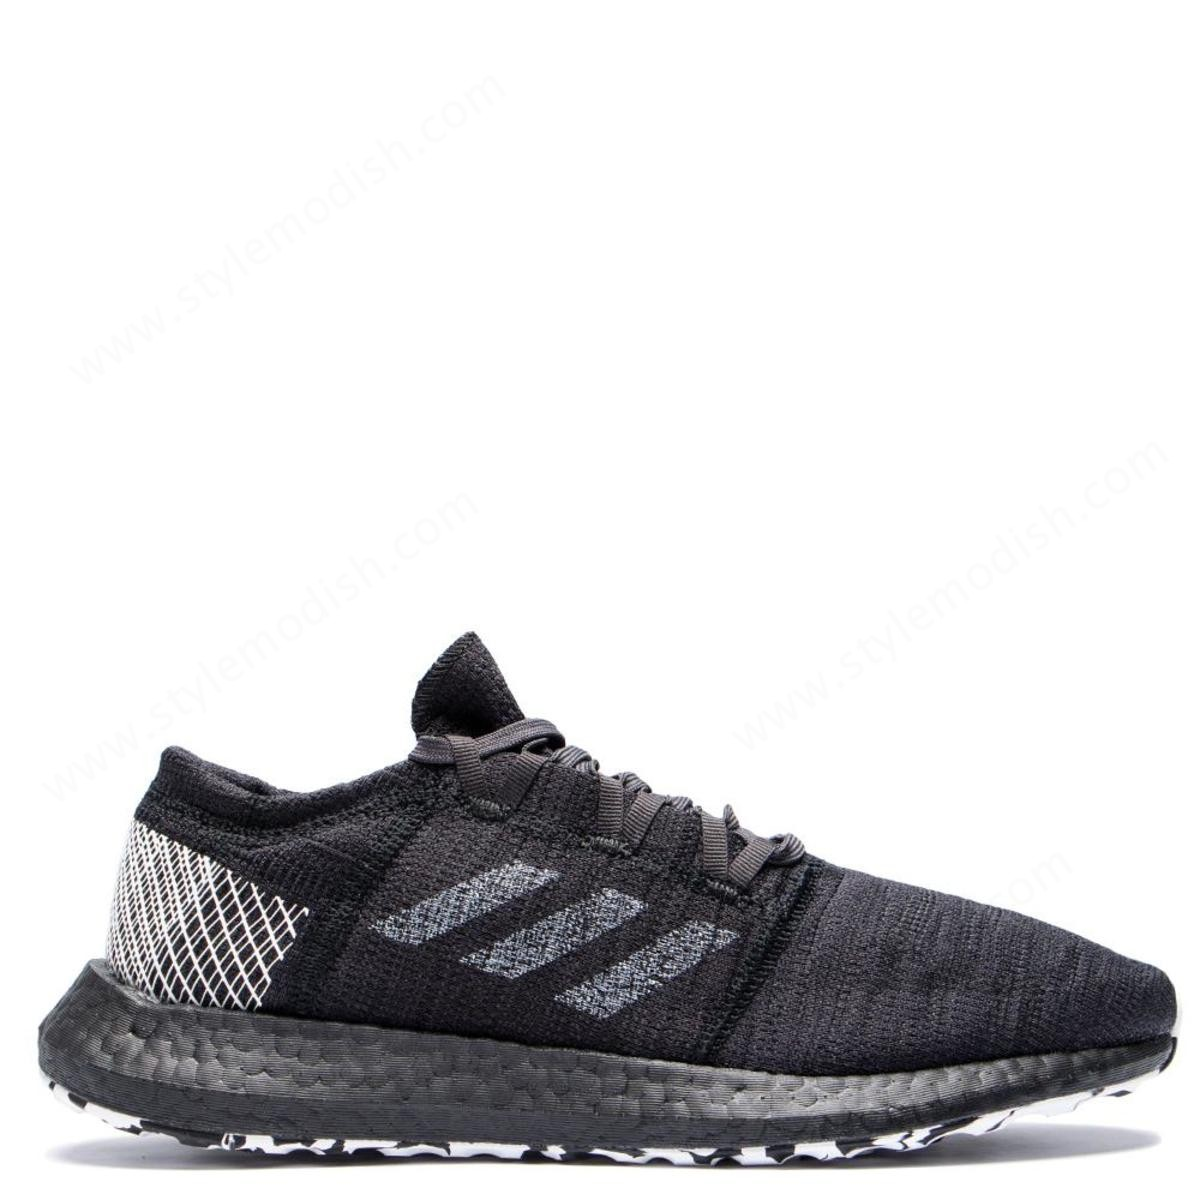 Men's Adidas Pureboost Element Ltd - Core Black Sneakers & Sneakers - -0